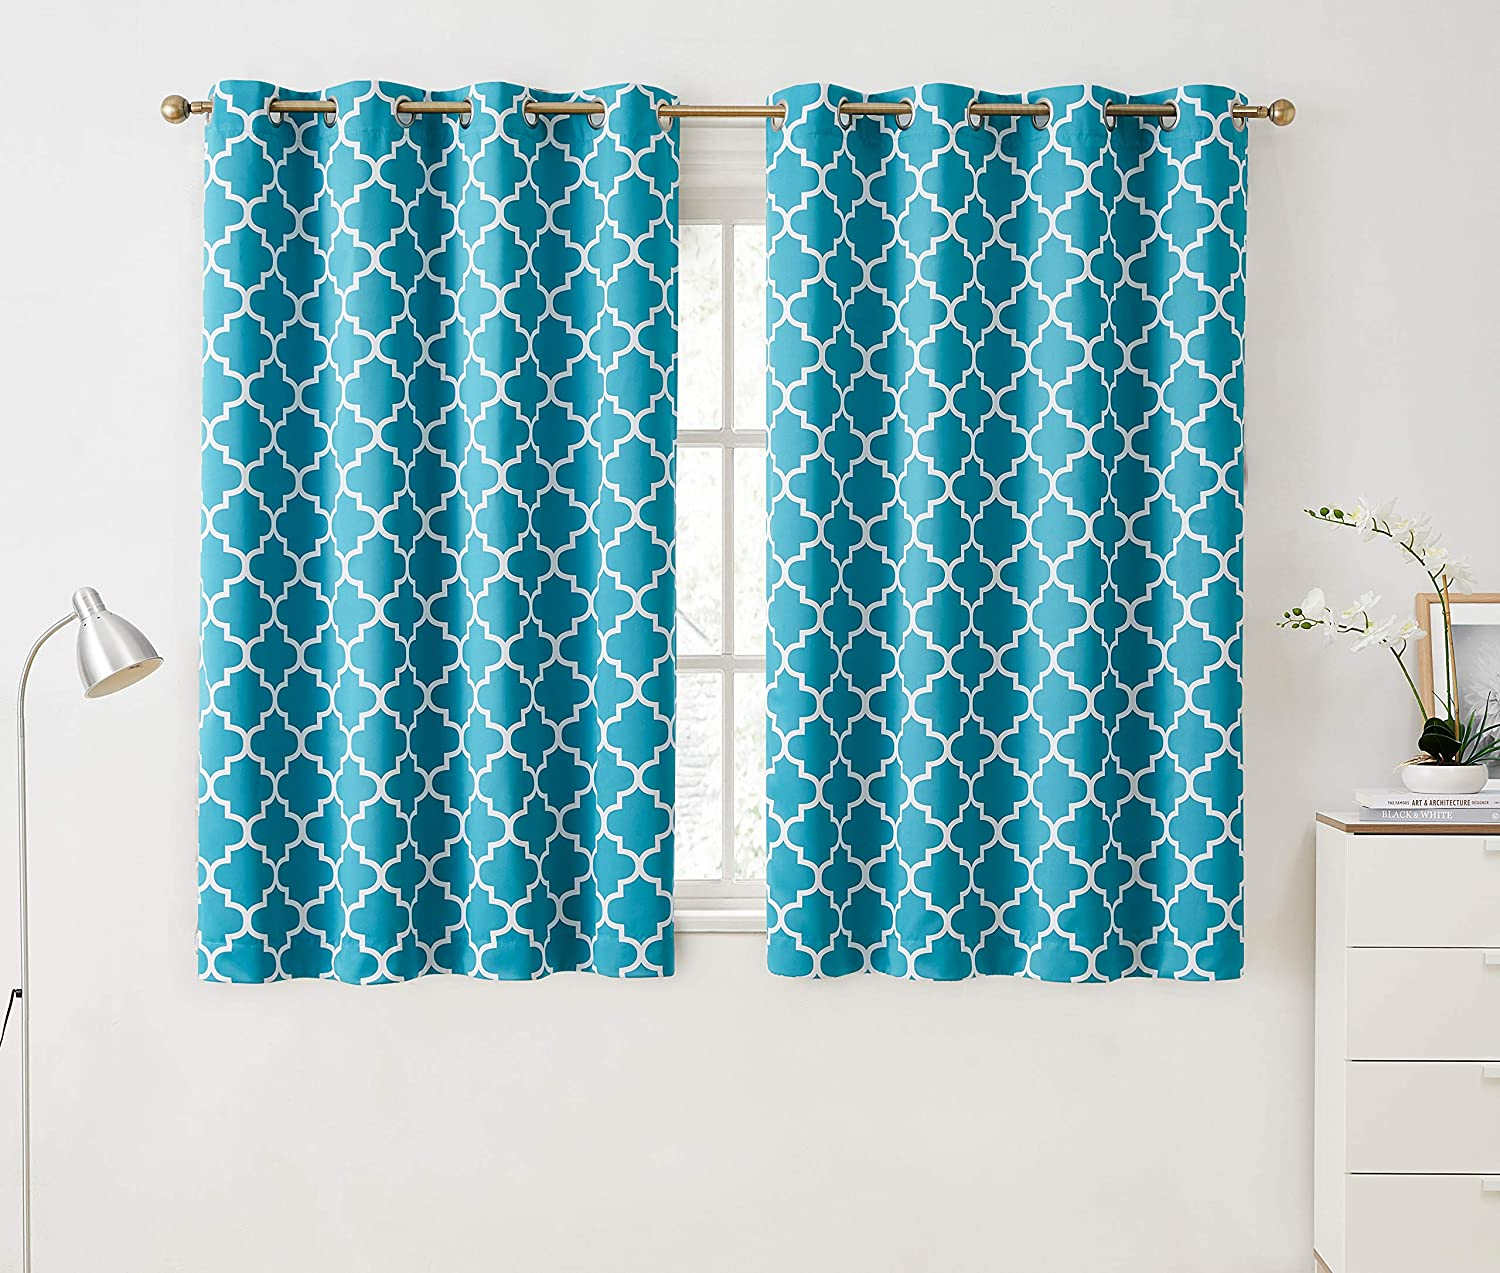 """HLC.ME Lattice Print Decorative Blackout Thermal Insulated Privacy Room Darkening Grommet Window Drapes Curtain Panels for Bedroom - Teal Blue - 52"""" W x 63"""" L - Set of 2 Panels"""